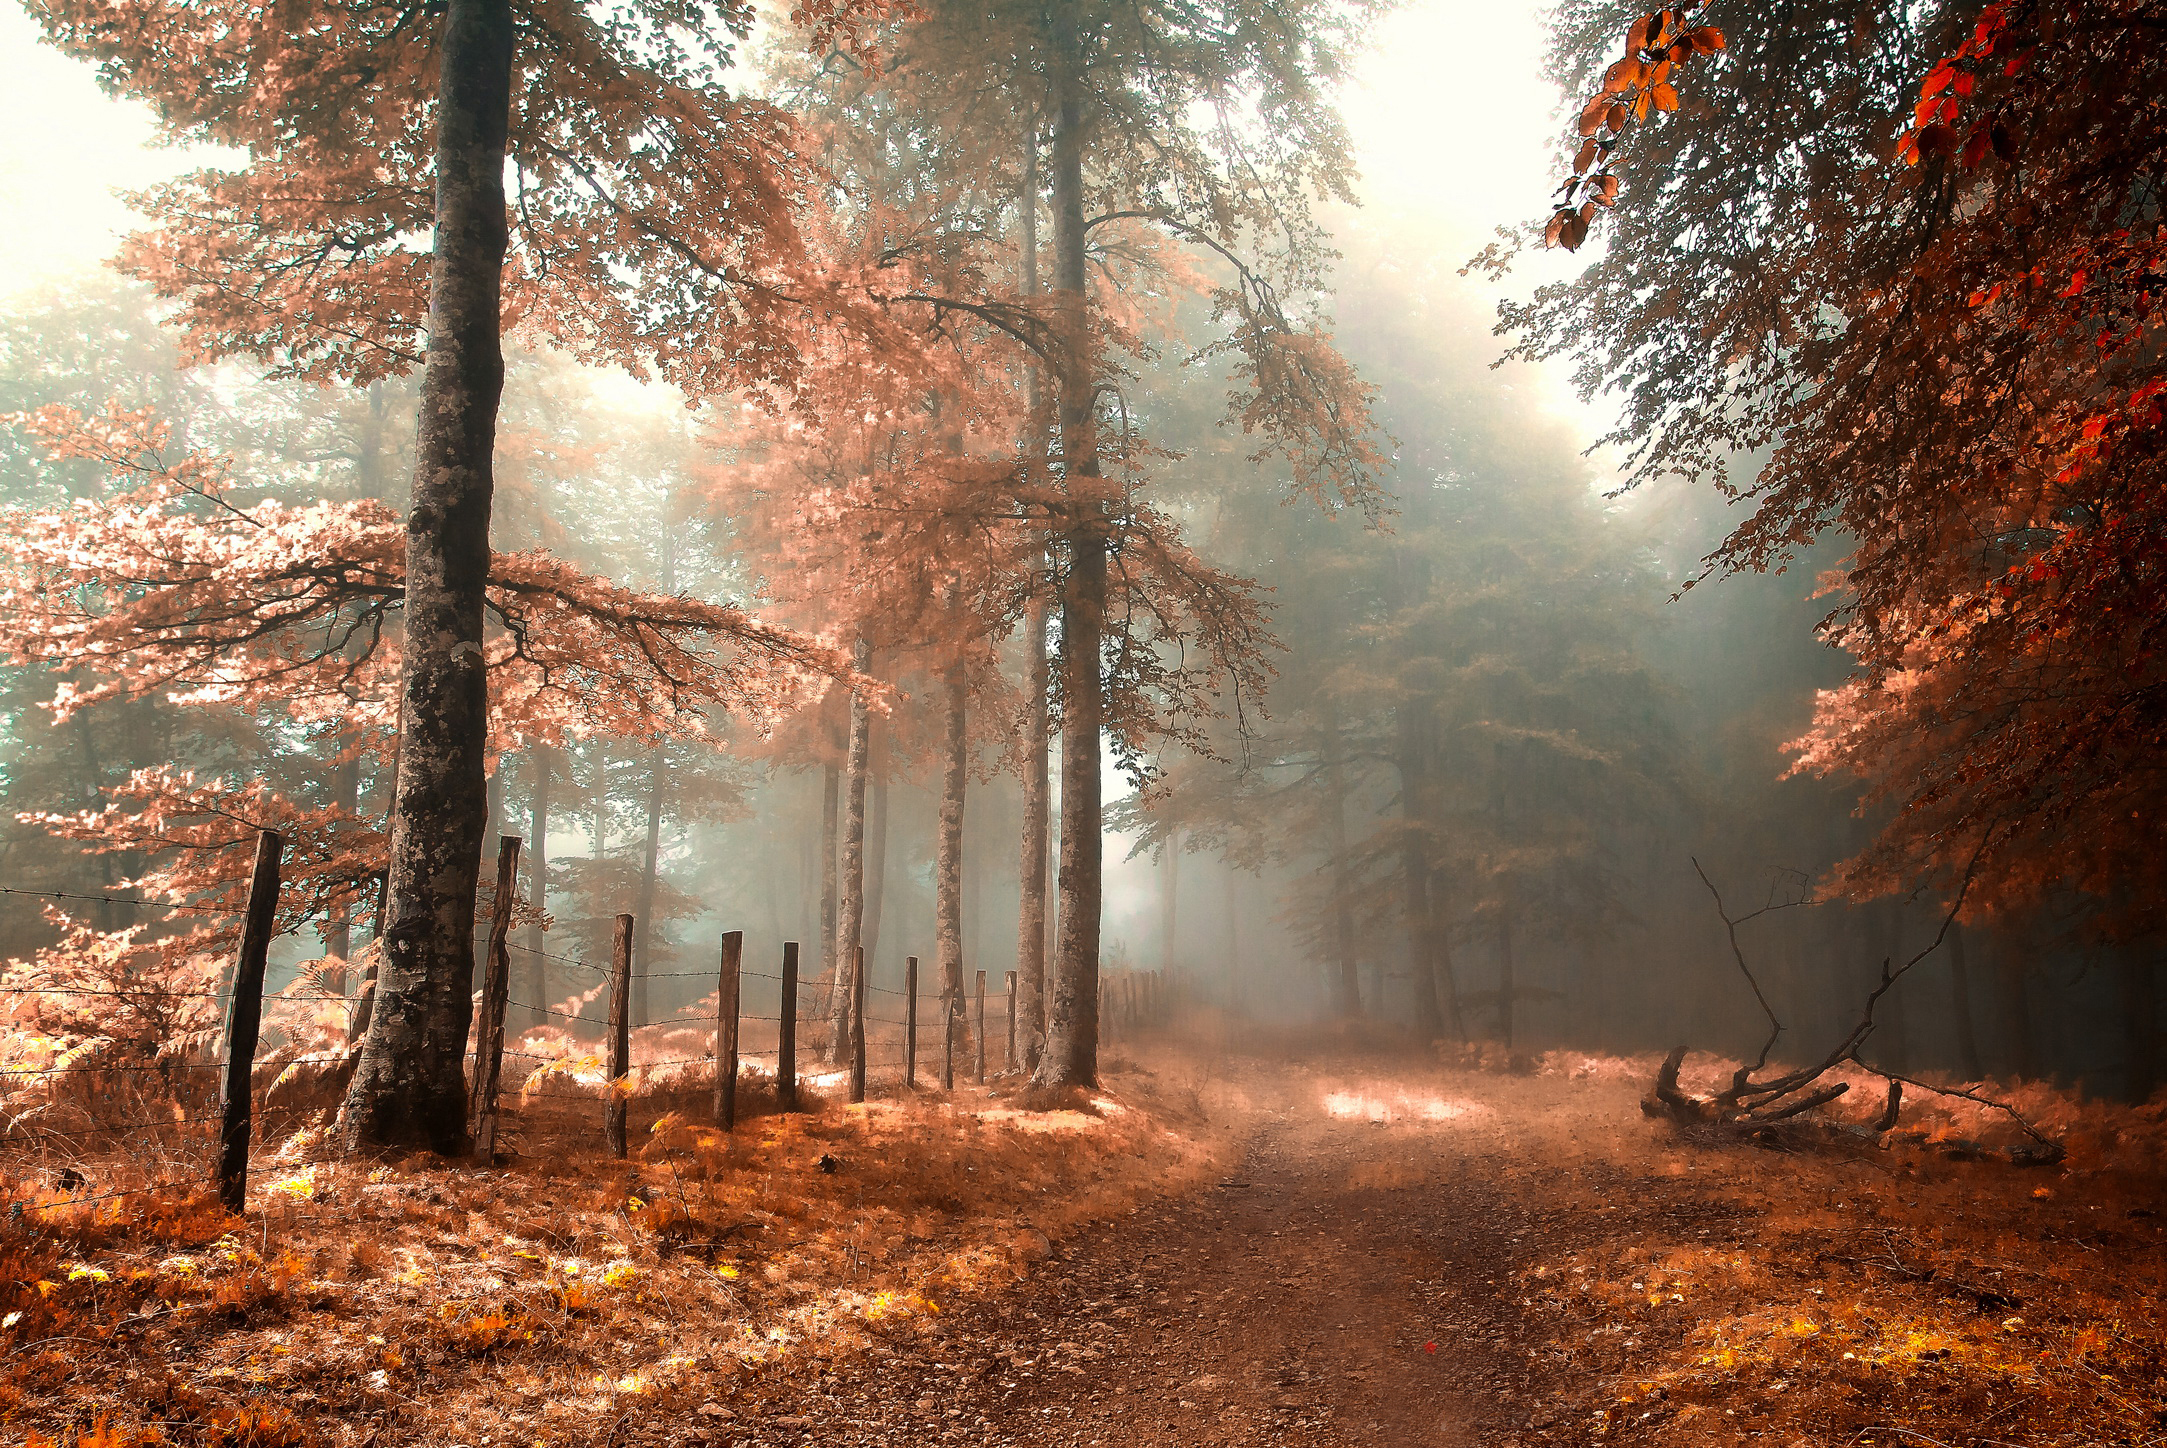 Road Fence Fog Forest Autumn Wallpaper 2167x1448